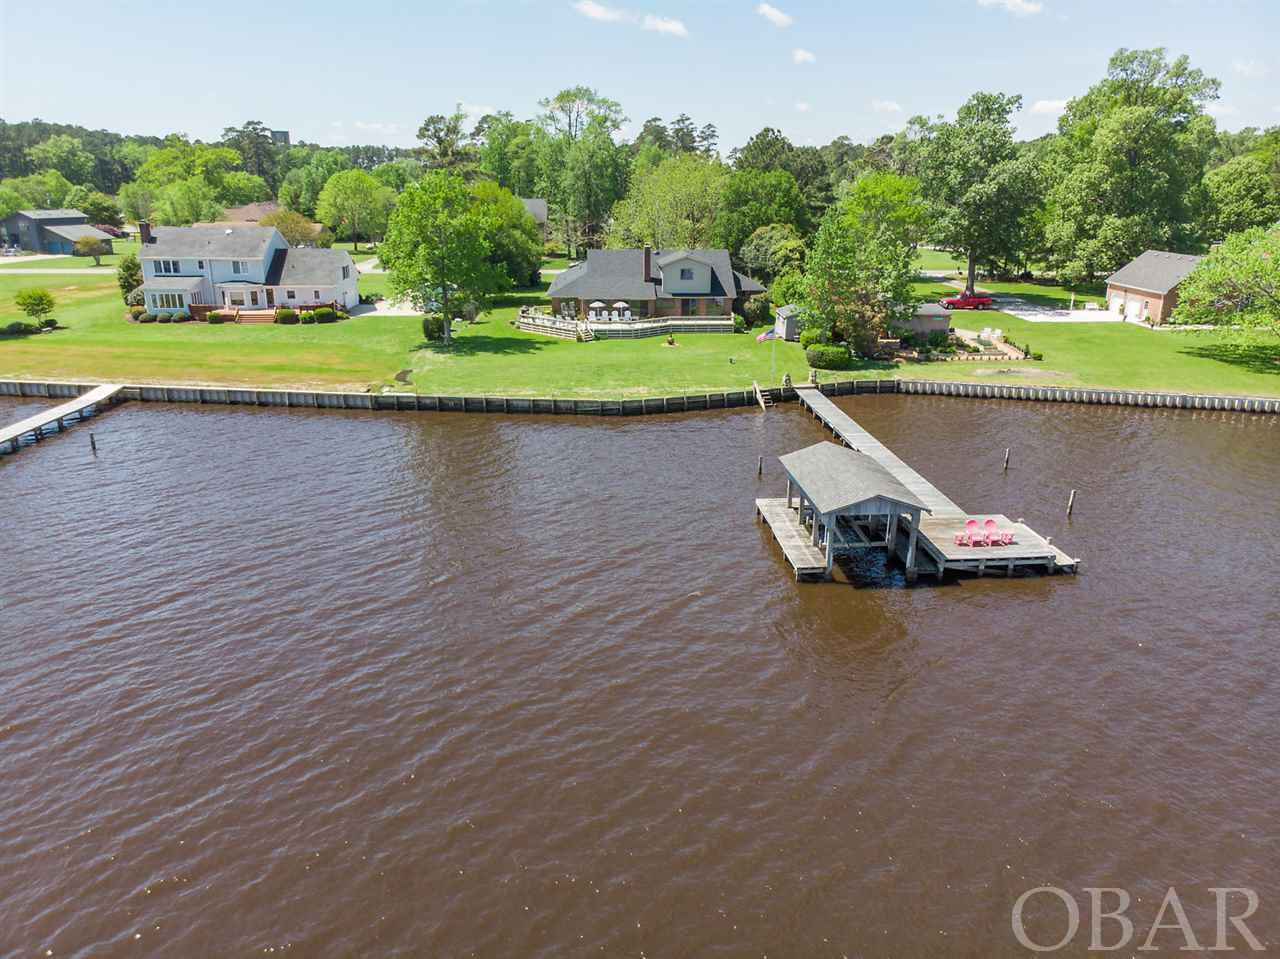 Small Drive, Elizabeth City, NC 27909, 3 Bedrooms Bedrooms, ,4 BathroomsBathrooms,Residential,For sale,Small Drive,104876